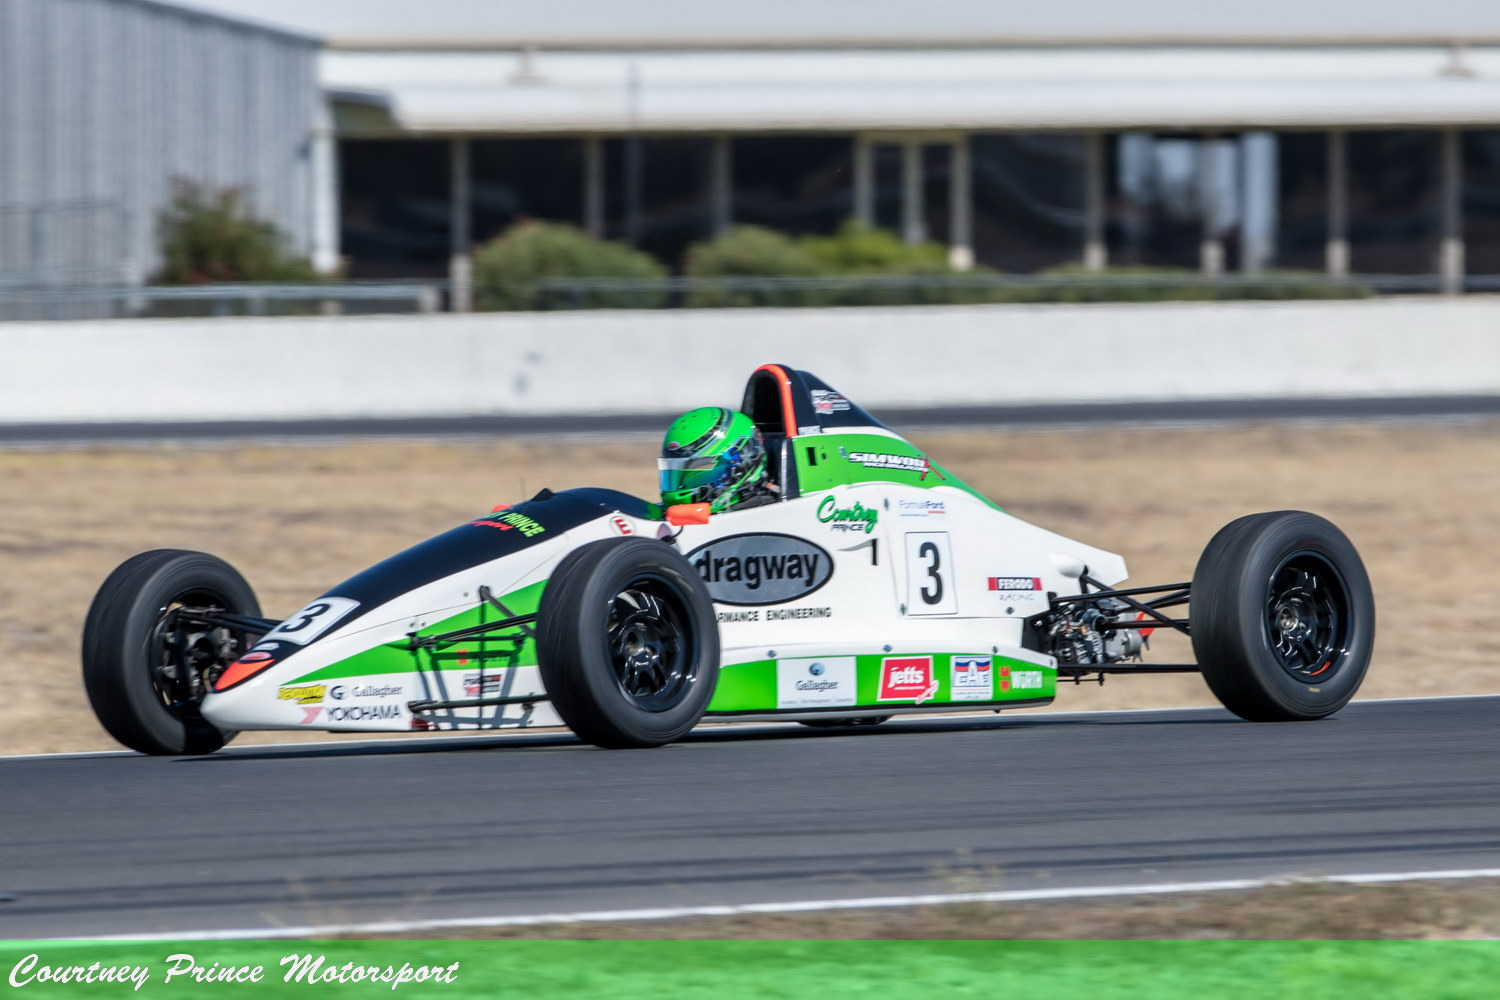 Courtney racing. National Series - Round 1, Winton 9-11th March 2018. Courtney Prince Motorsport.